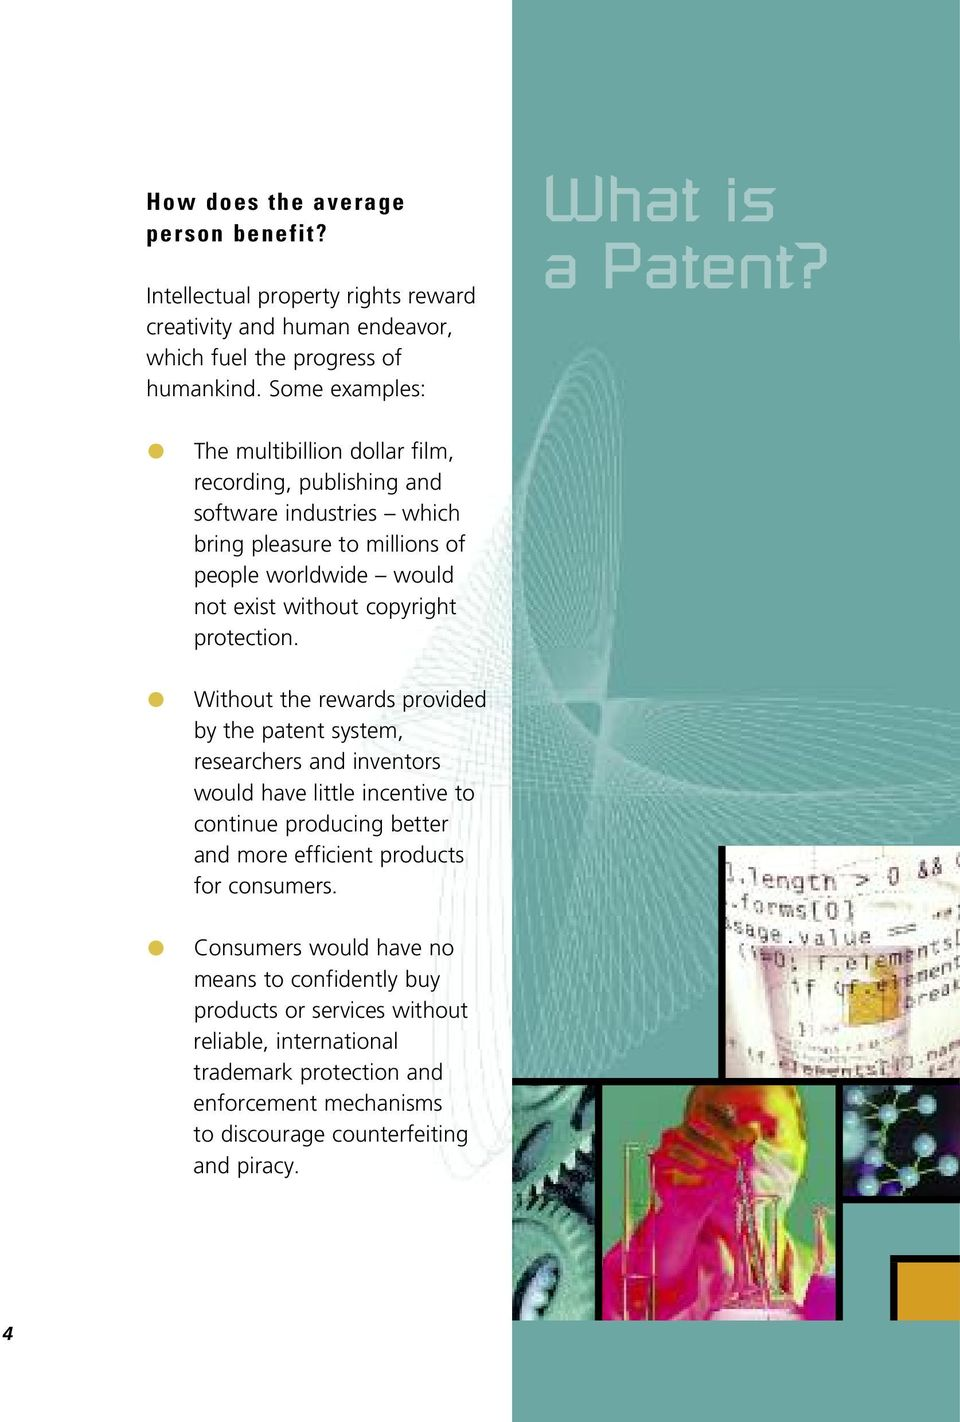 Without the rewards provided by the patent system, researchers and inventors would have little incentive to continue producing better and more efficient products for consumers.